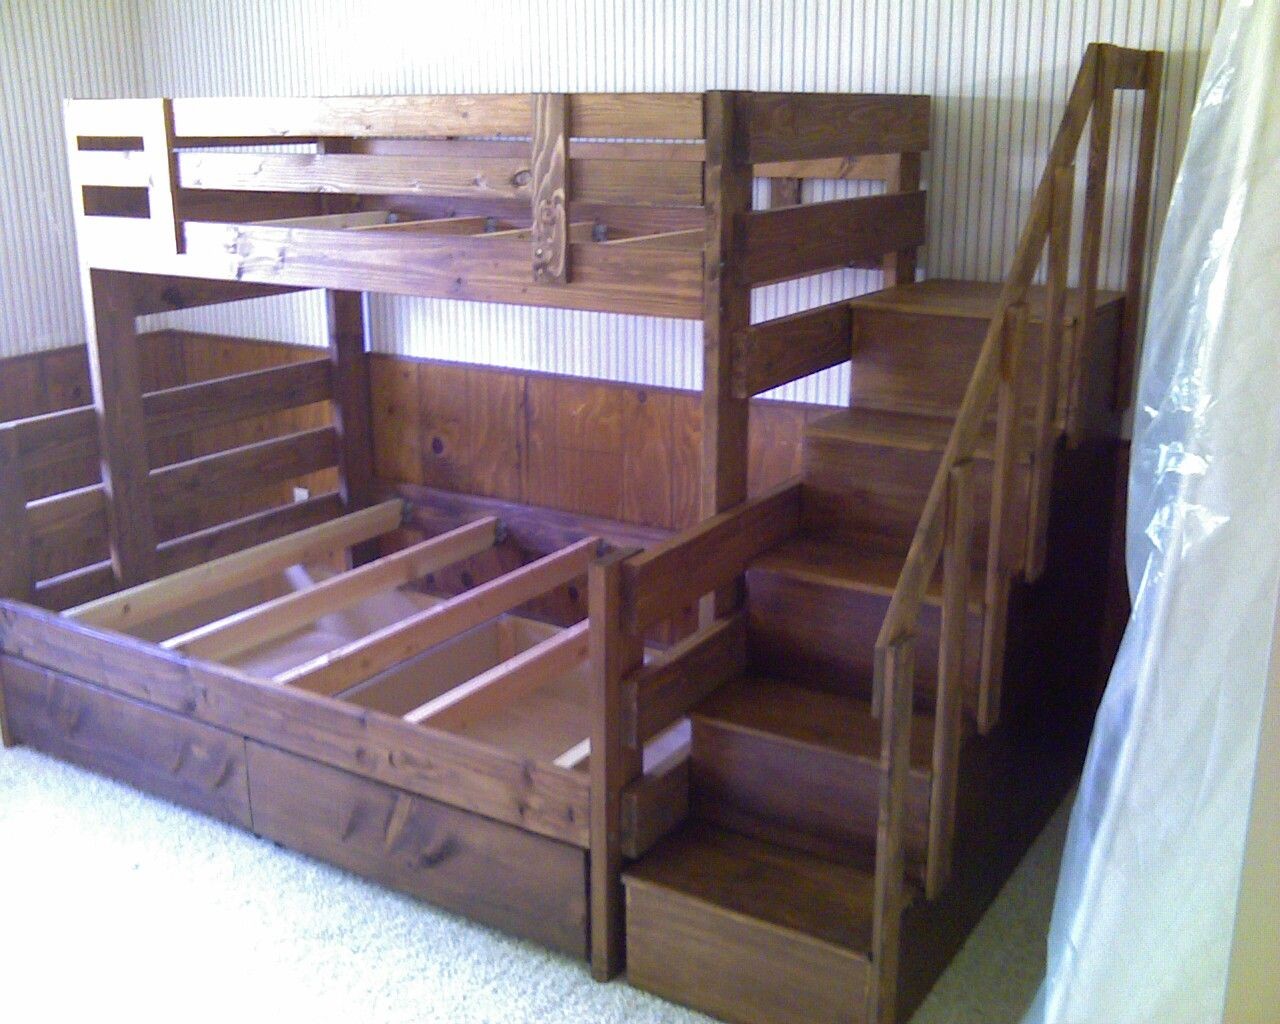 Custom Bunk Bed Plans Built In Beds Design Ideas And If You Look For A Few This Article Can See 30 Cool Decor